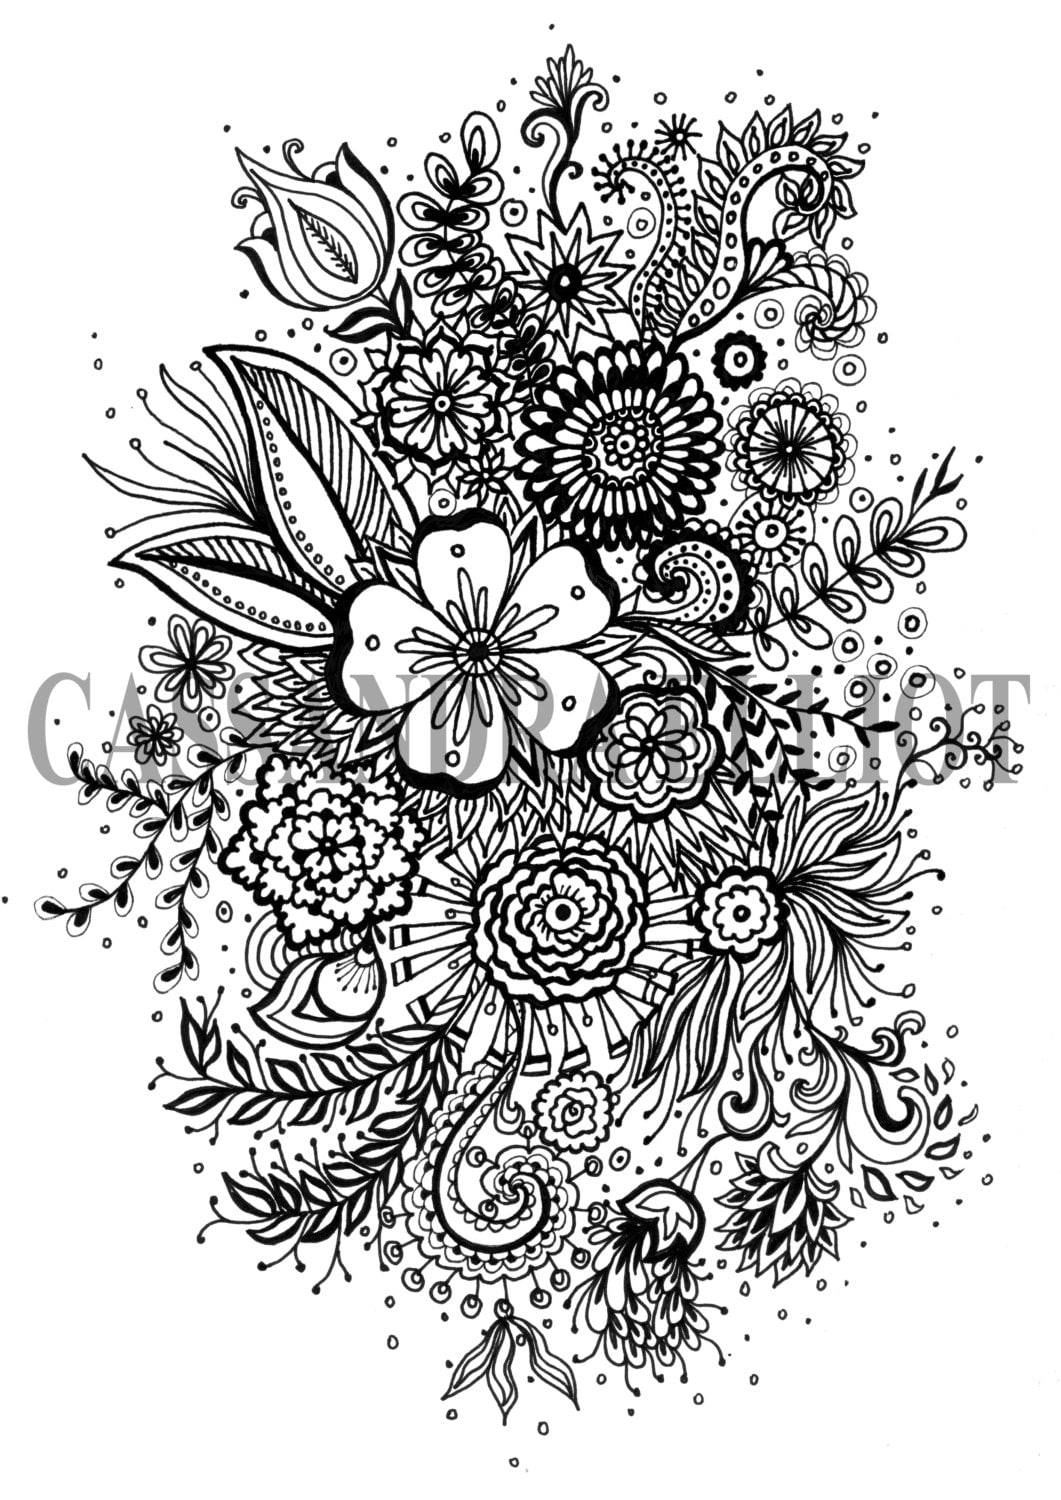 Soft image with printable coloring pages for adults flowers